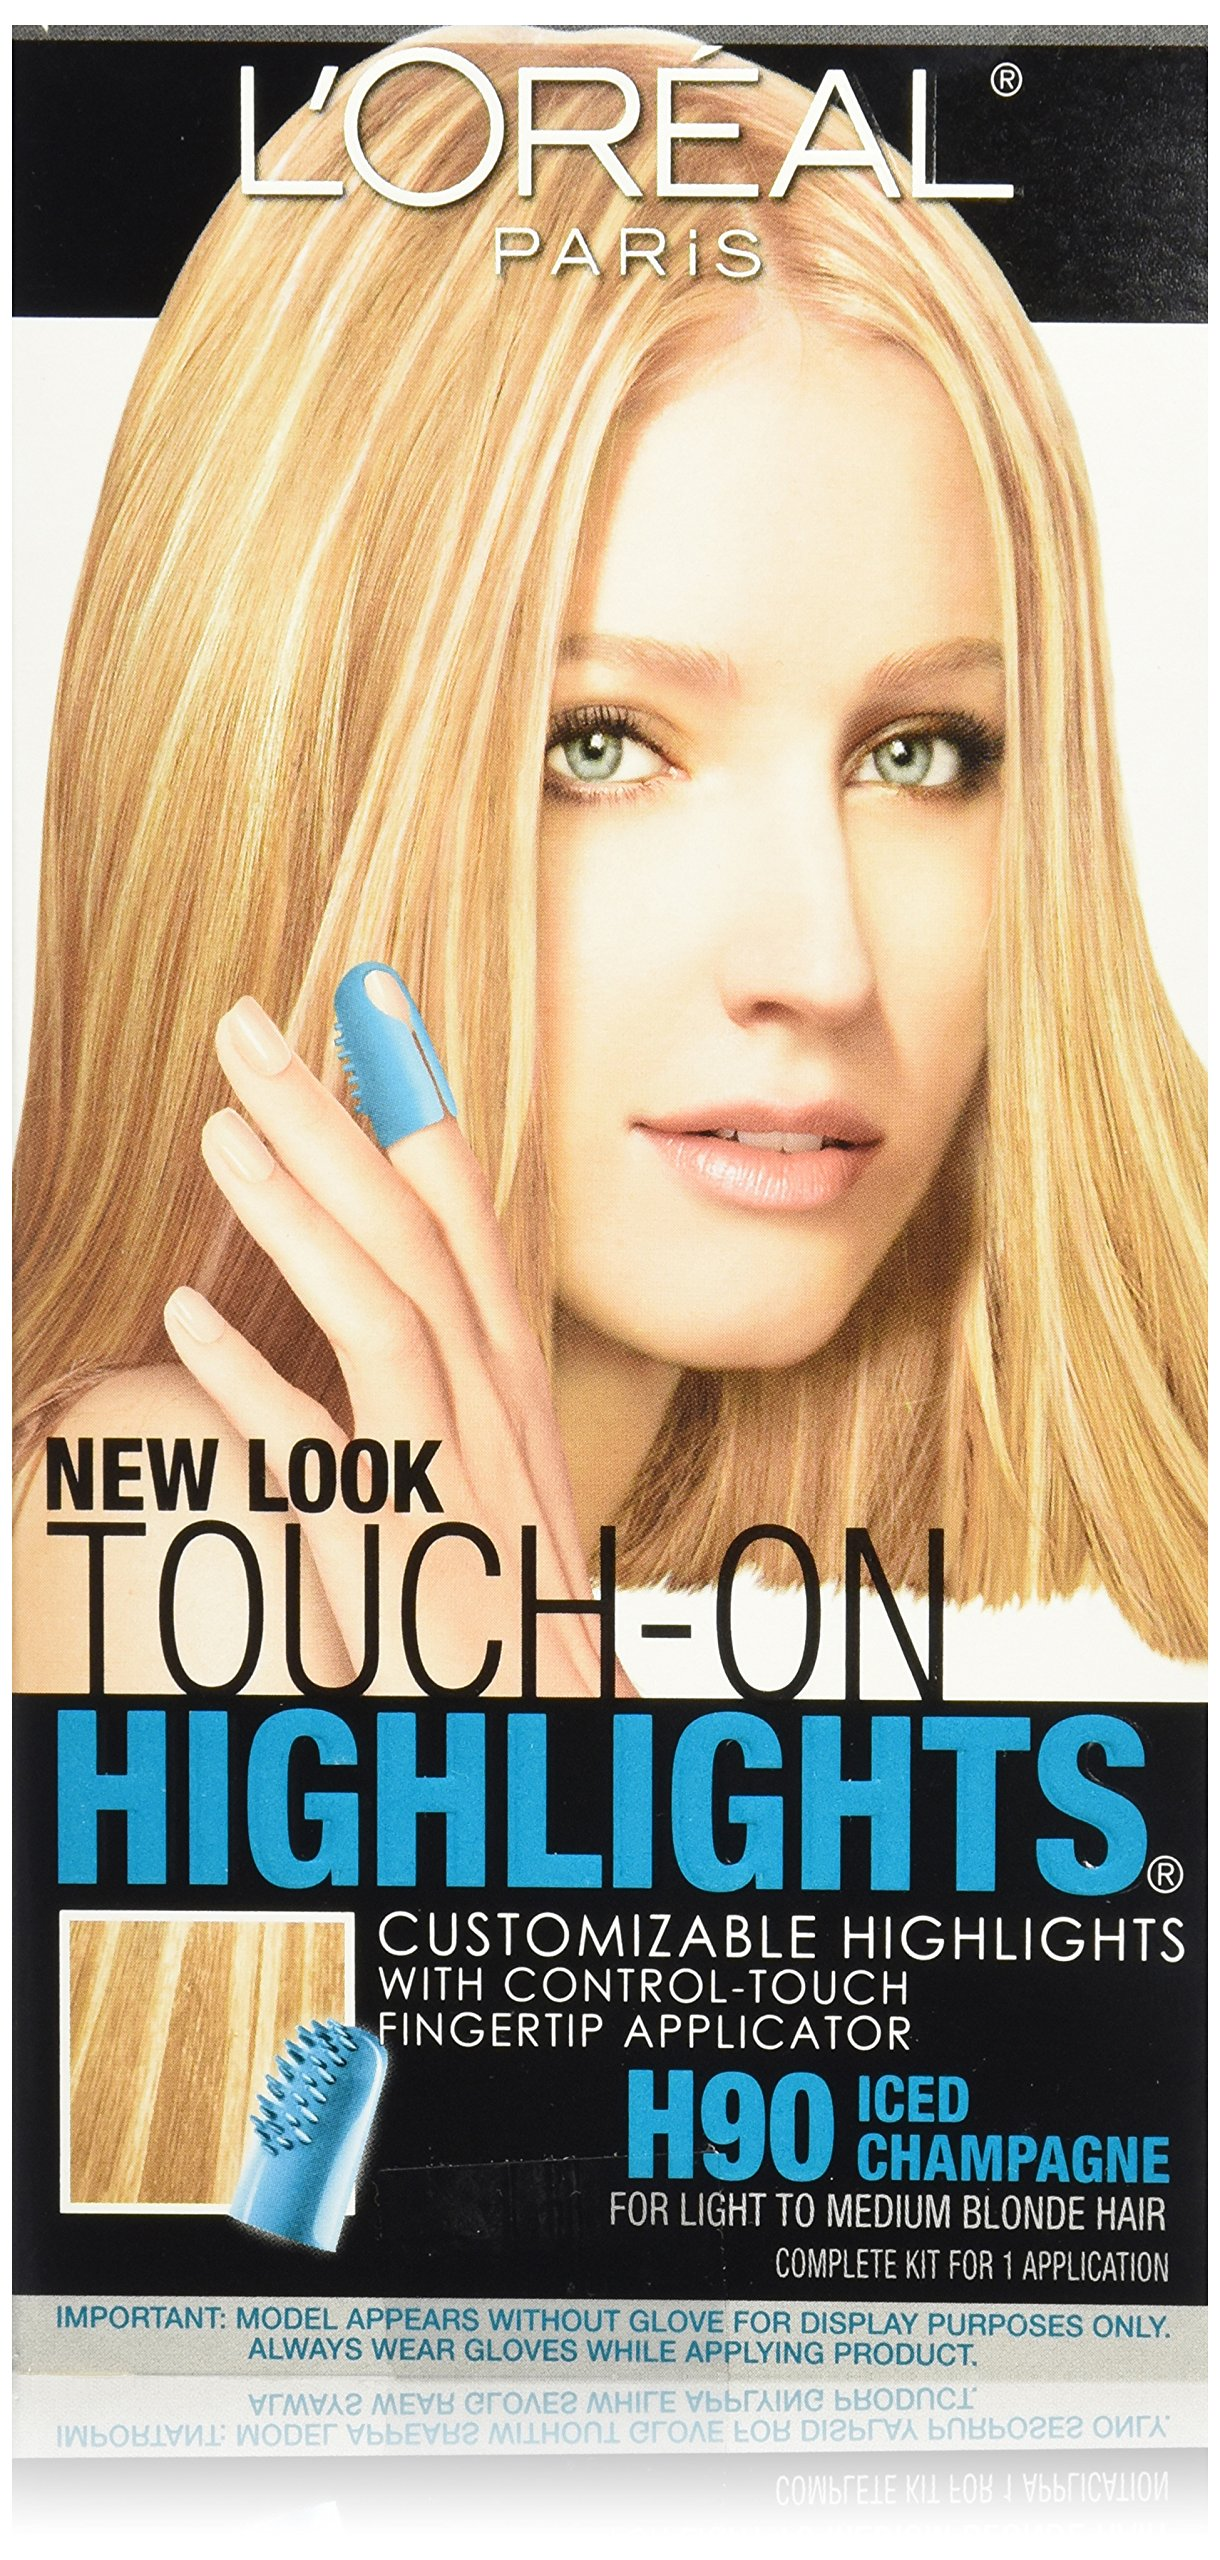 L'Oréal Paris Touch on Highlights Customizable Highlights, H90 Iced Champagne